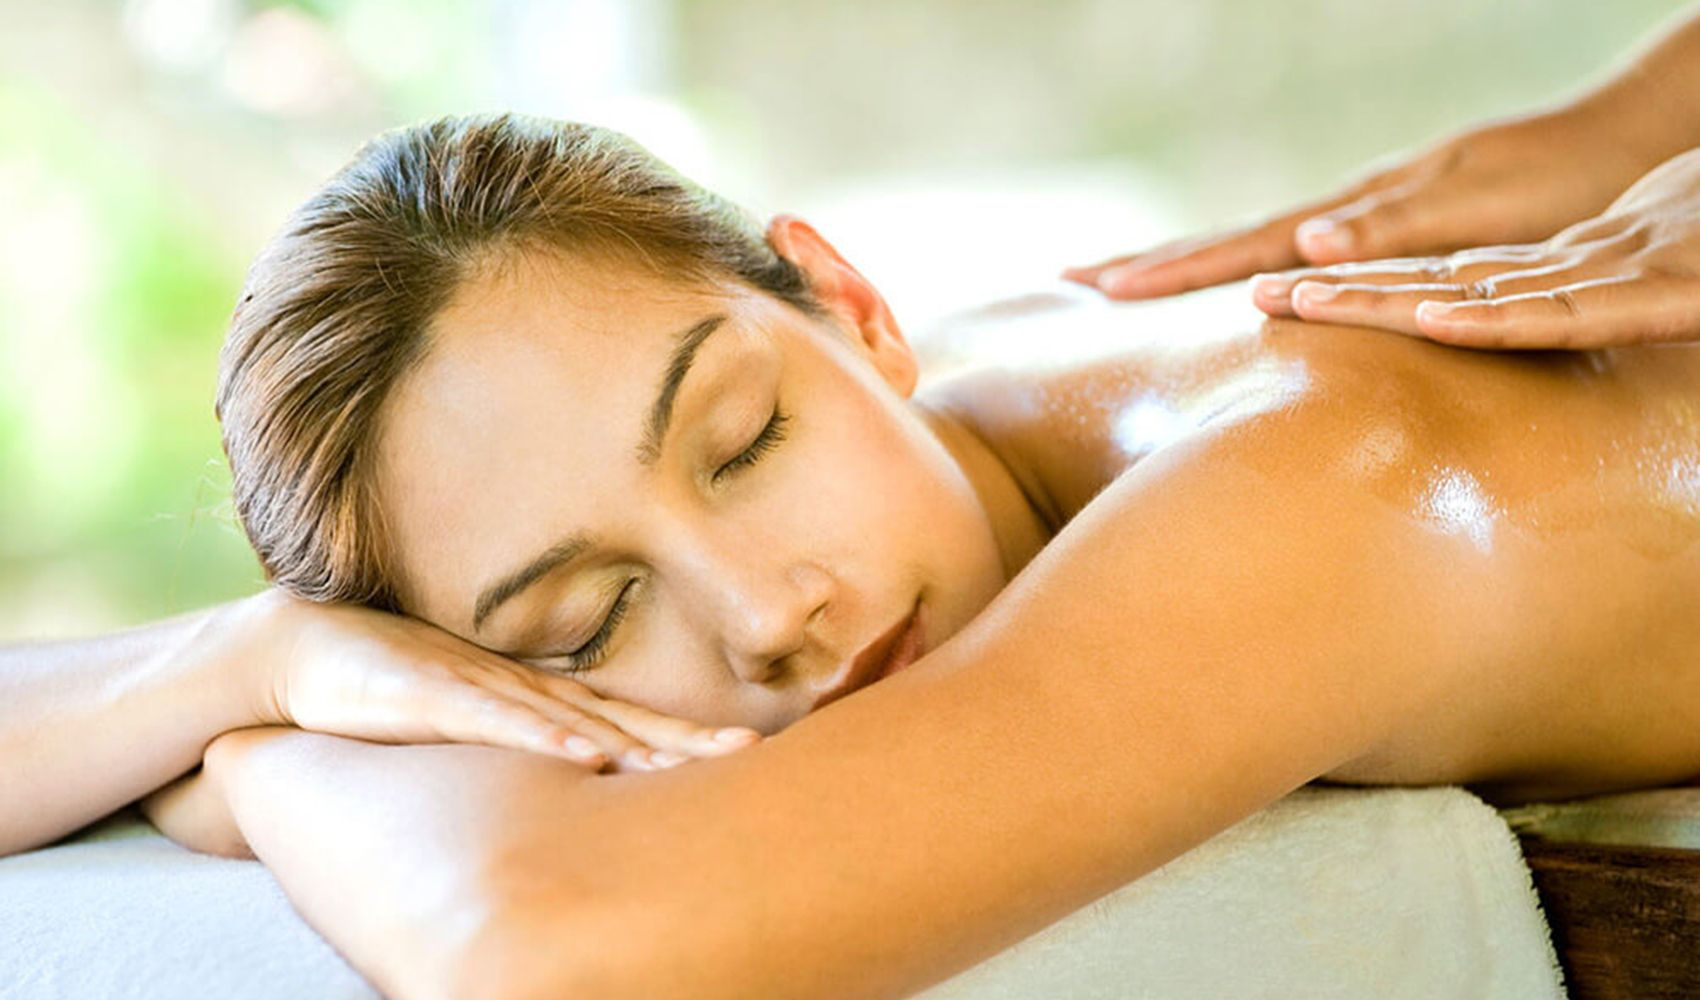 Spa treatments include deep, relaxing massage, Reiki, facials, manicures & pedicures